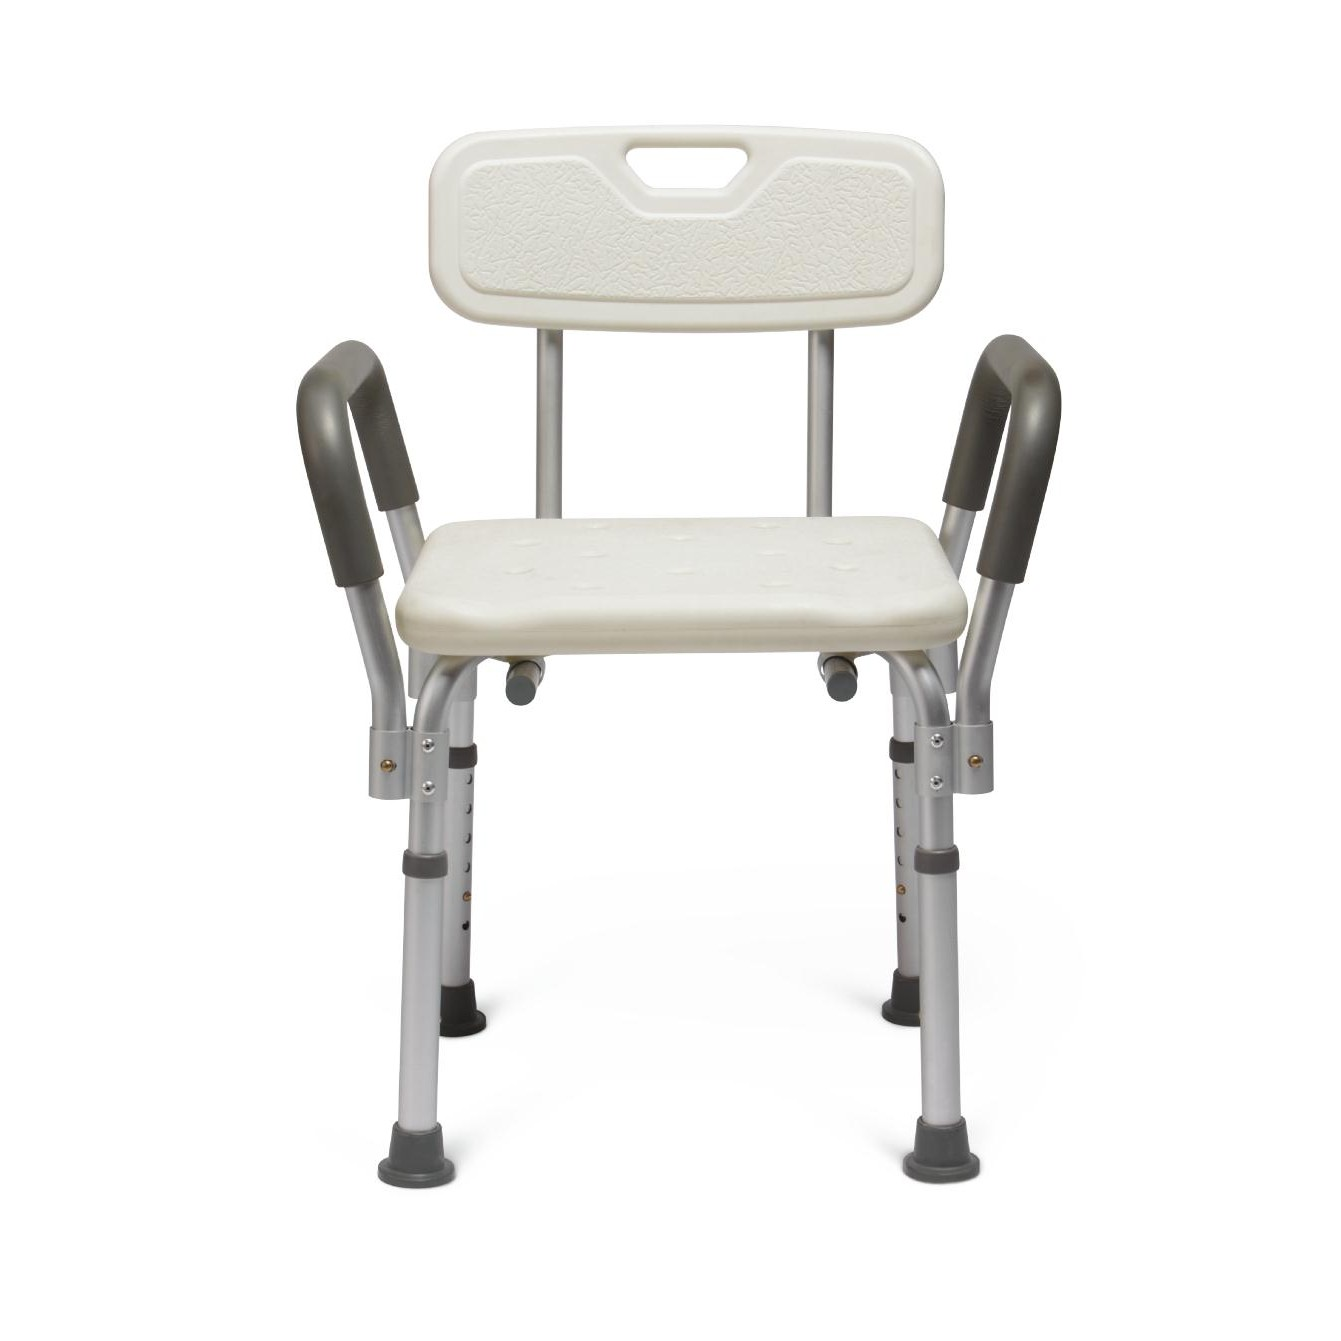 Medline Knockdown Bath Bench w/ Arms And Back